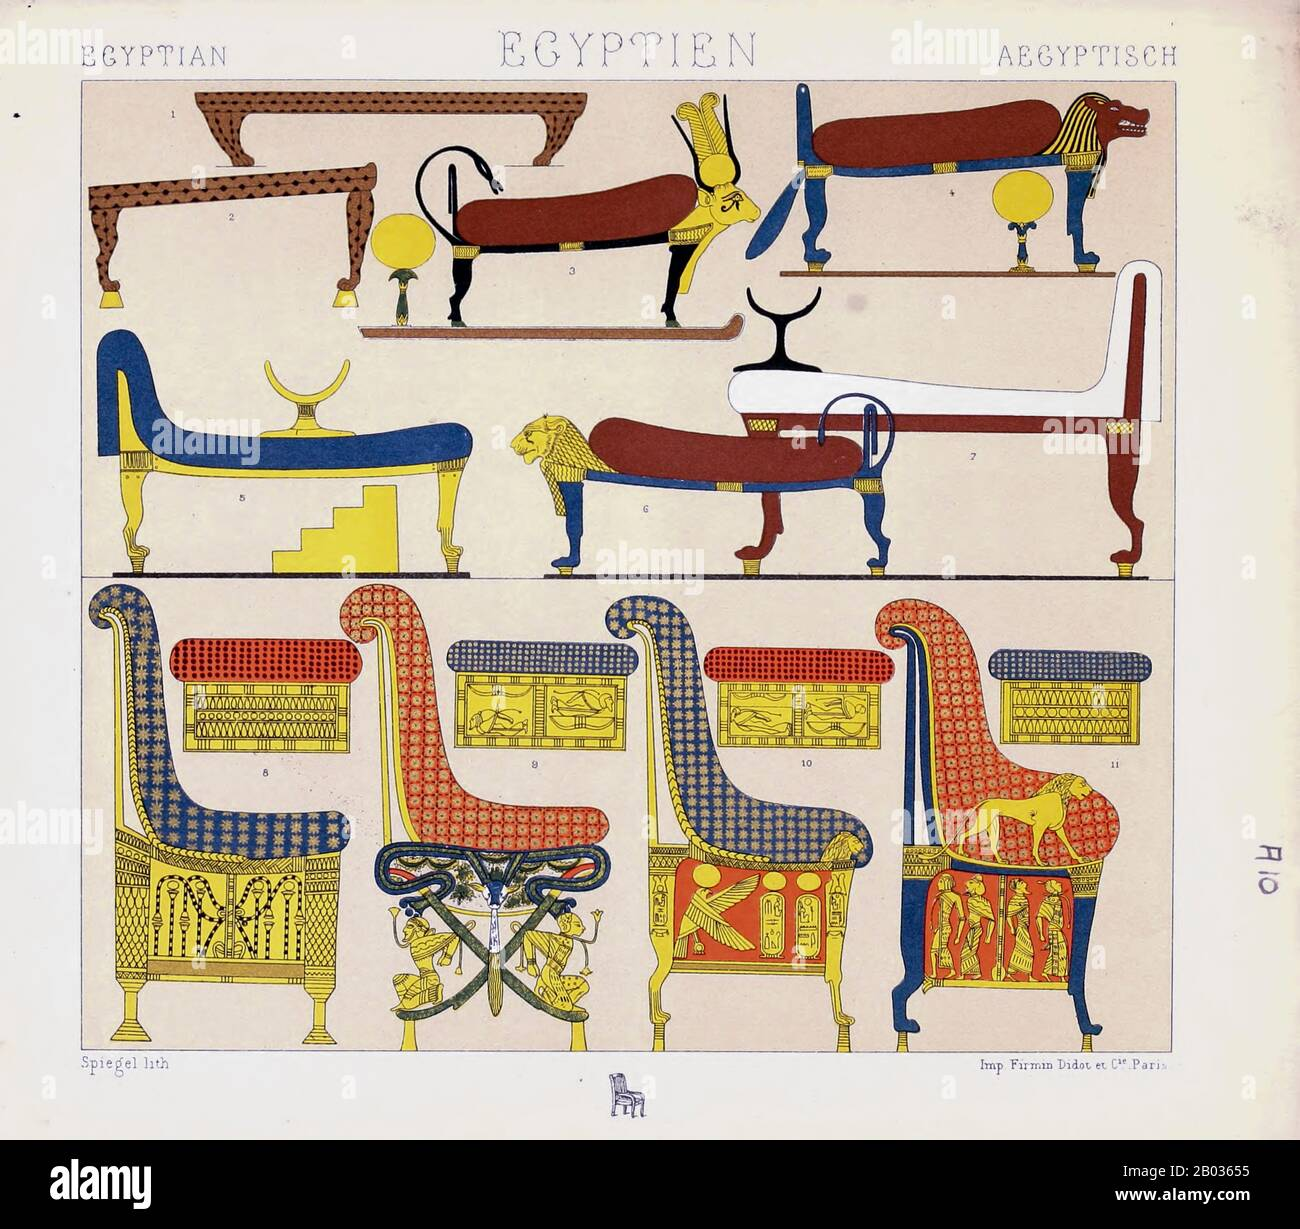 Ancient Egyptian Clothing High Resolution Stock Photography And Images Alamy